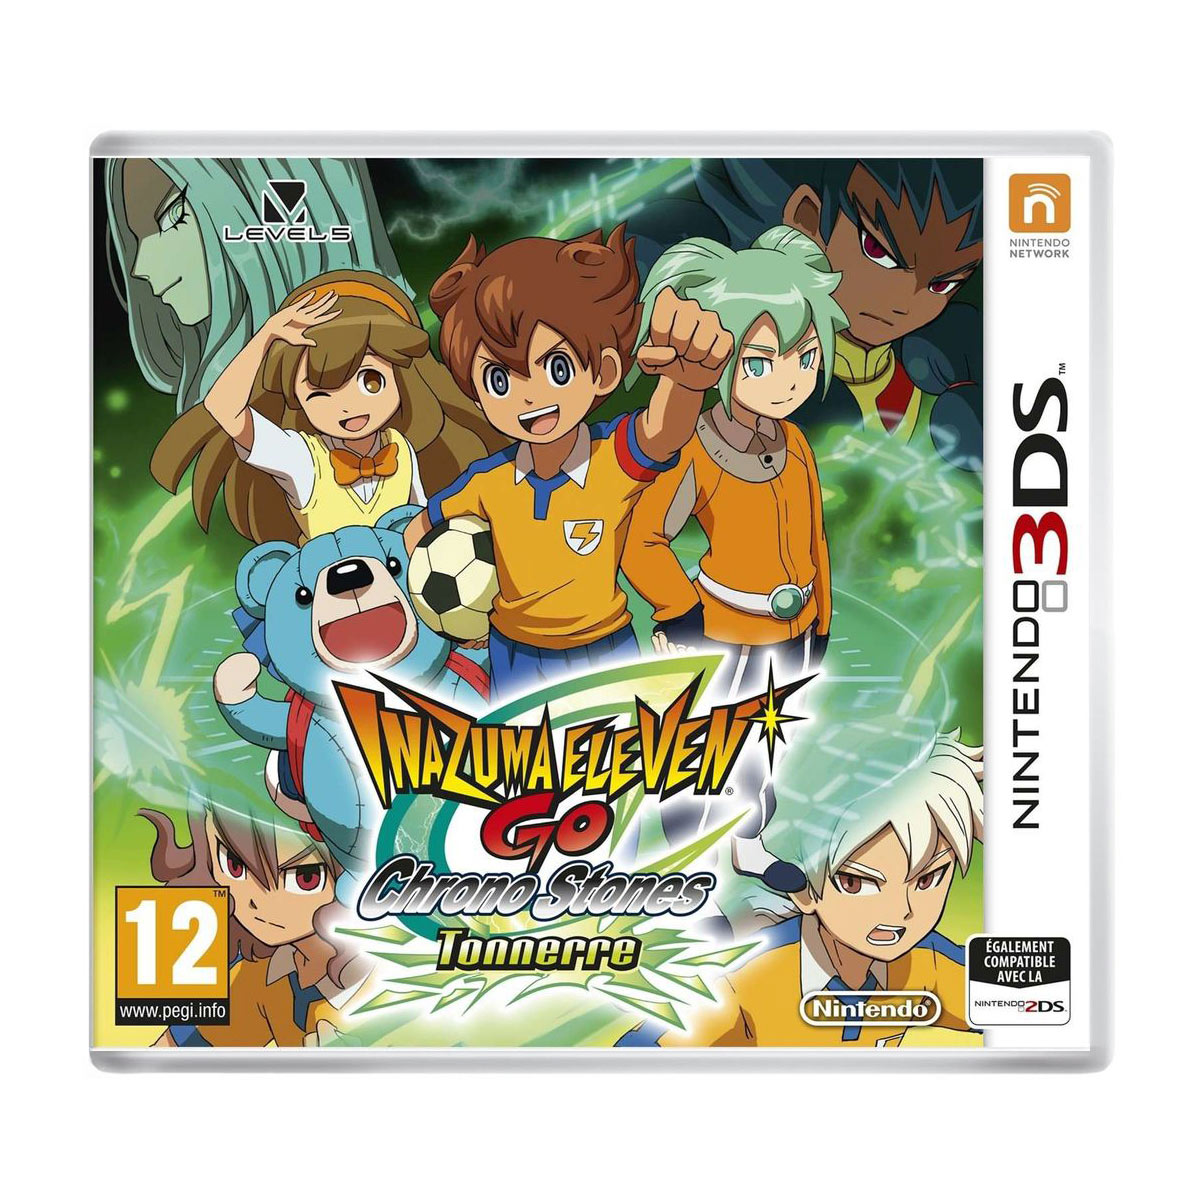 inazuma eleven go chronos stone tonnerre nintendo 3ds 2ds jeux nintendo 3ds nintendo sur. Black Bedroom Furniture Sets. Home Design Ideas